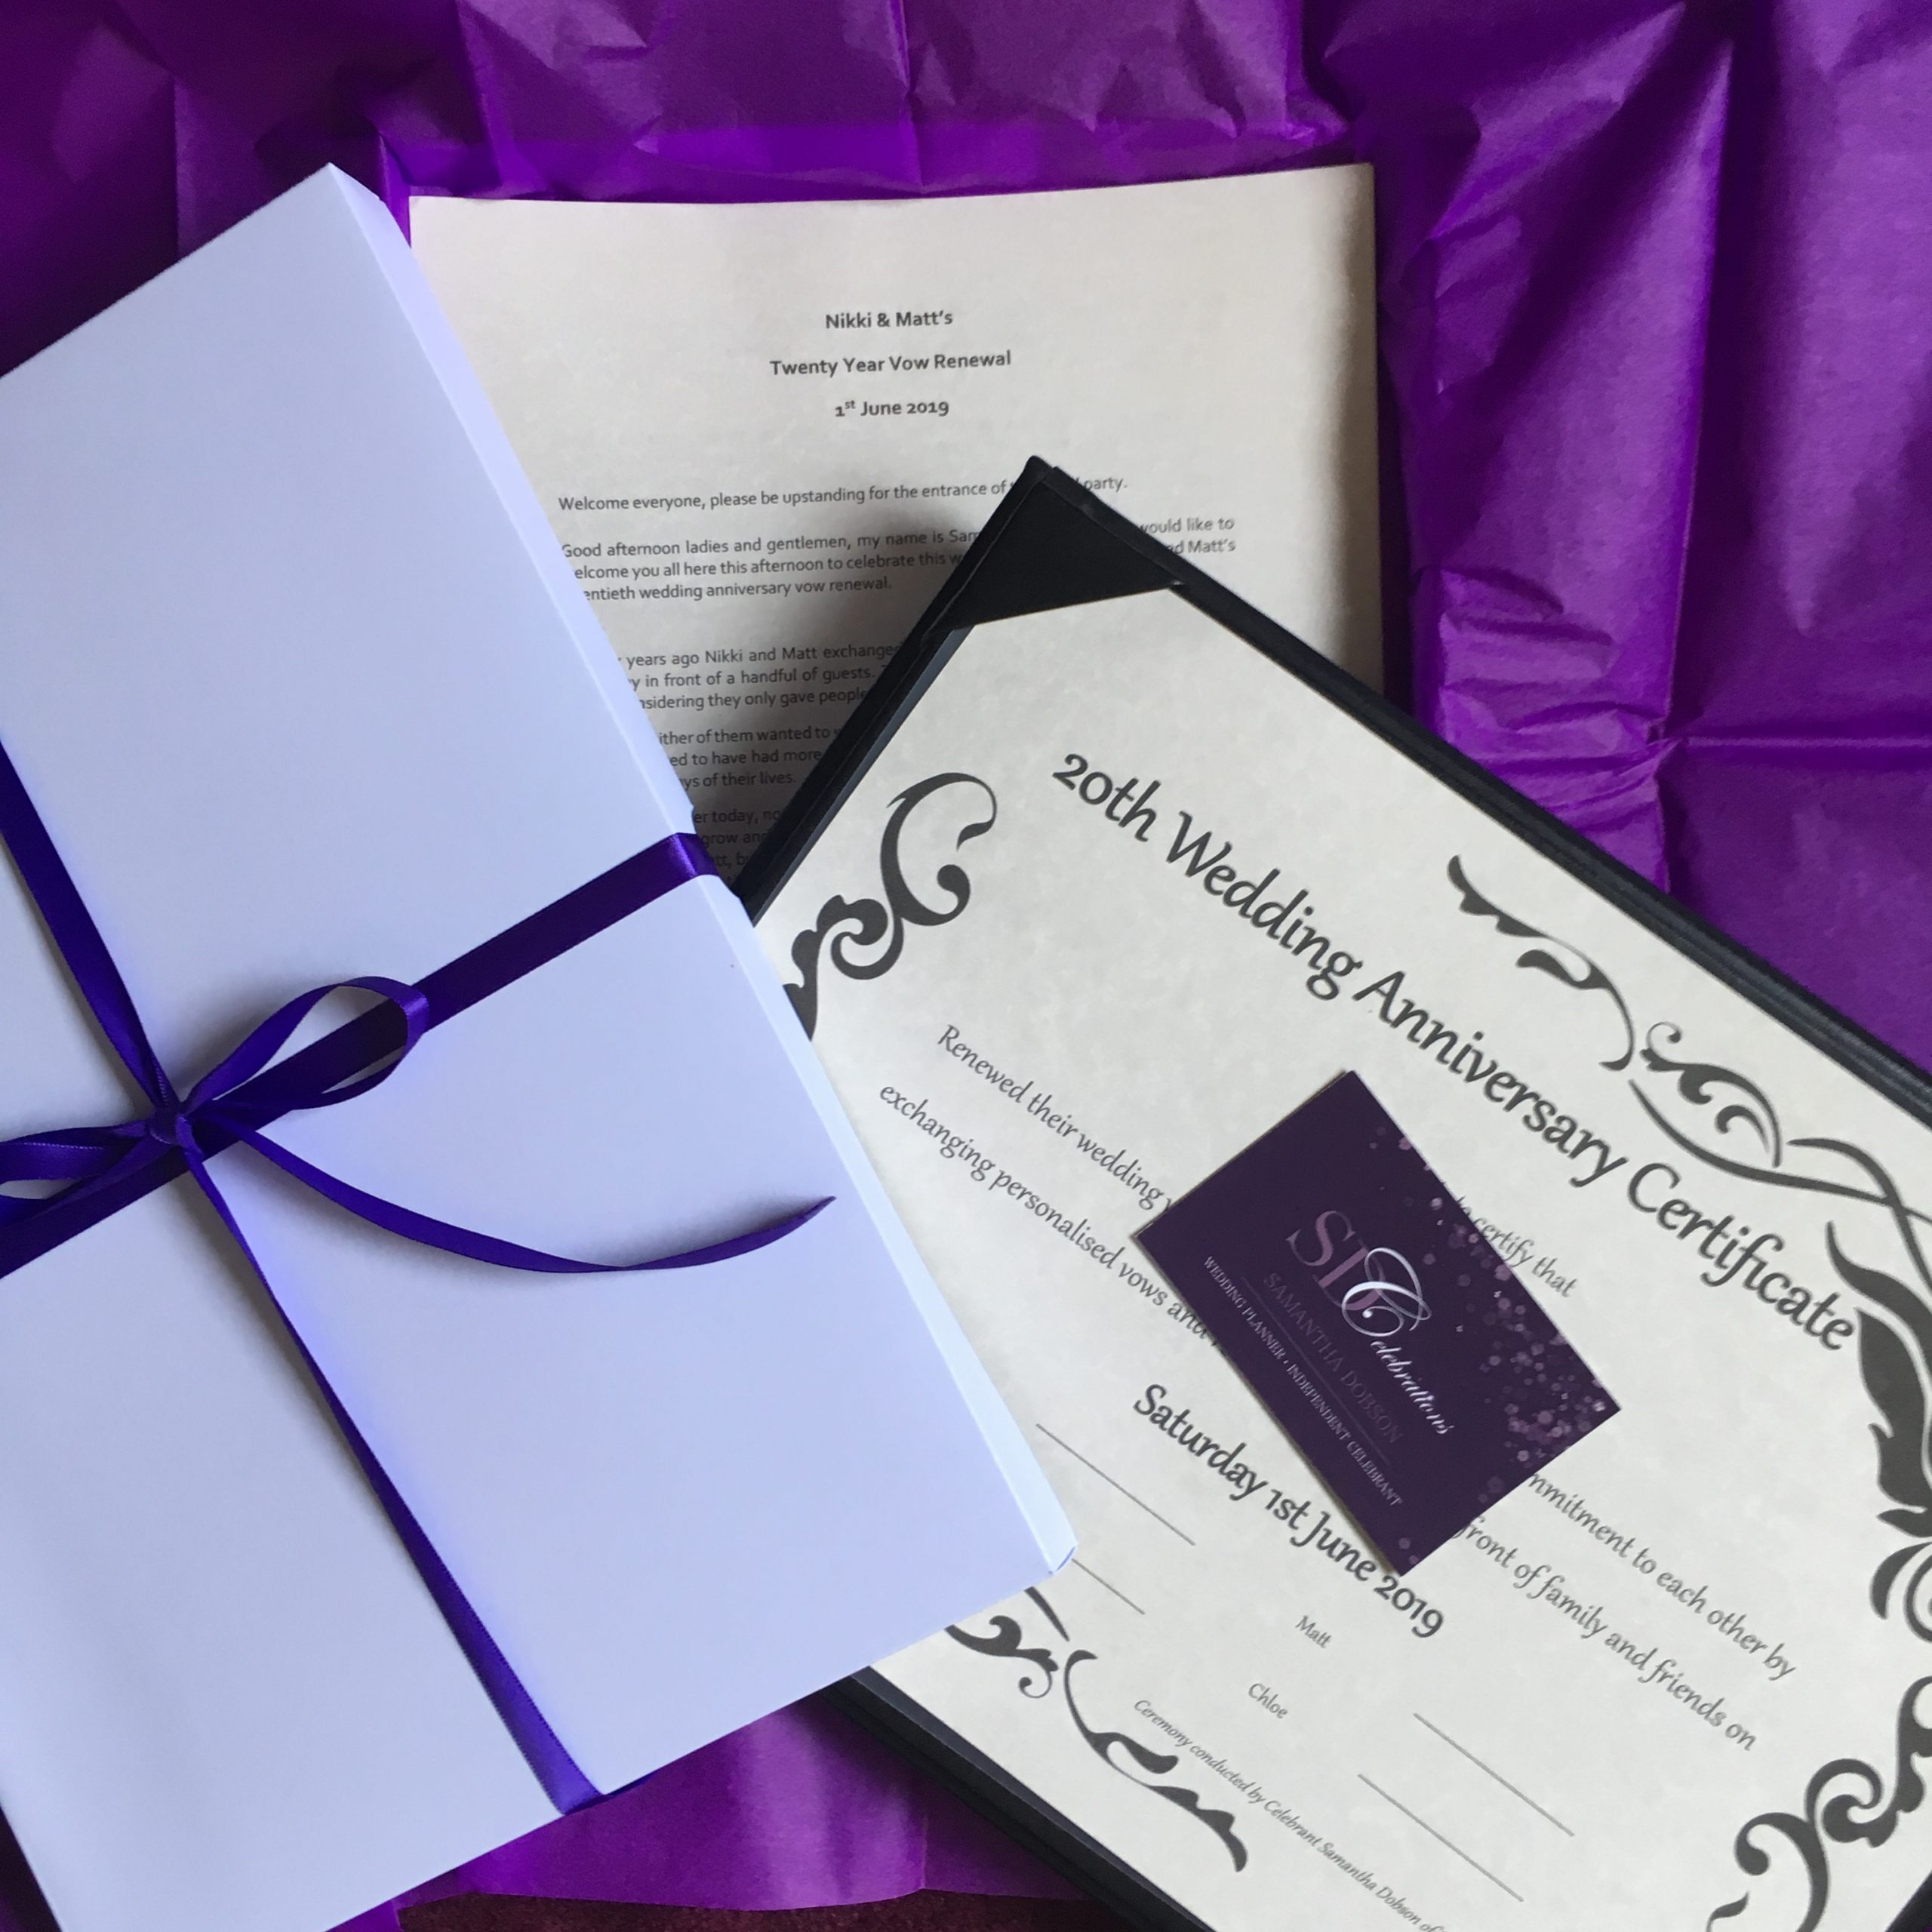 The script for a 20 year vow renewal ceremony is under a 20th Wedding Anniversary Certificate with a business card for SDCelebrations on the top. The lid for the presentation box is on the left.